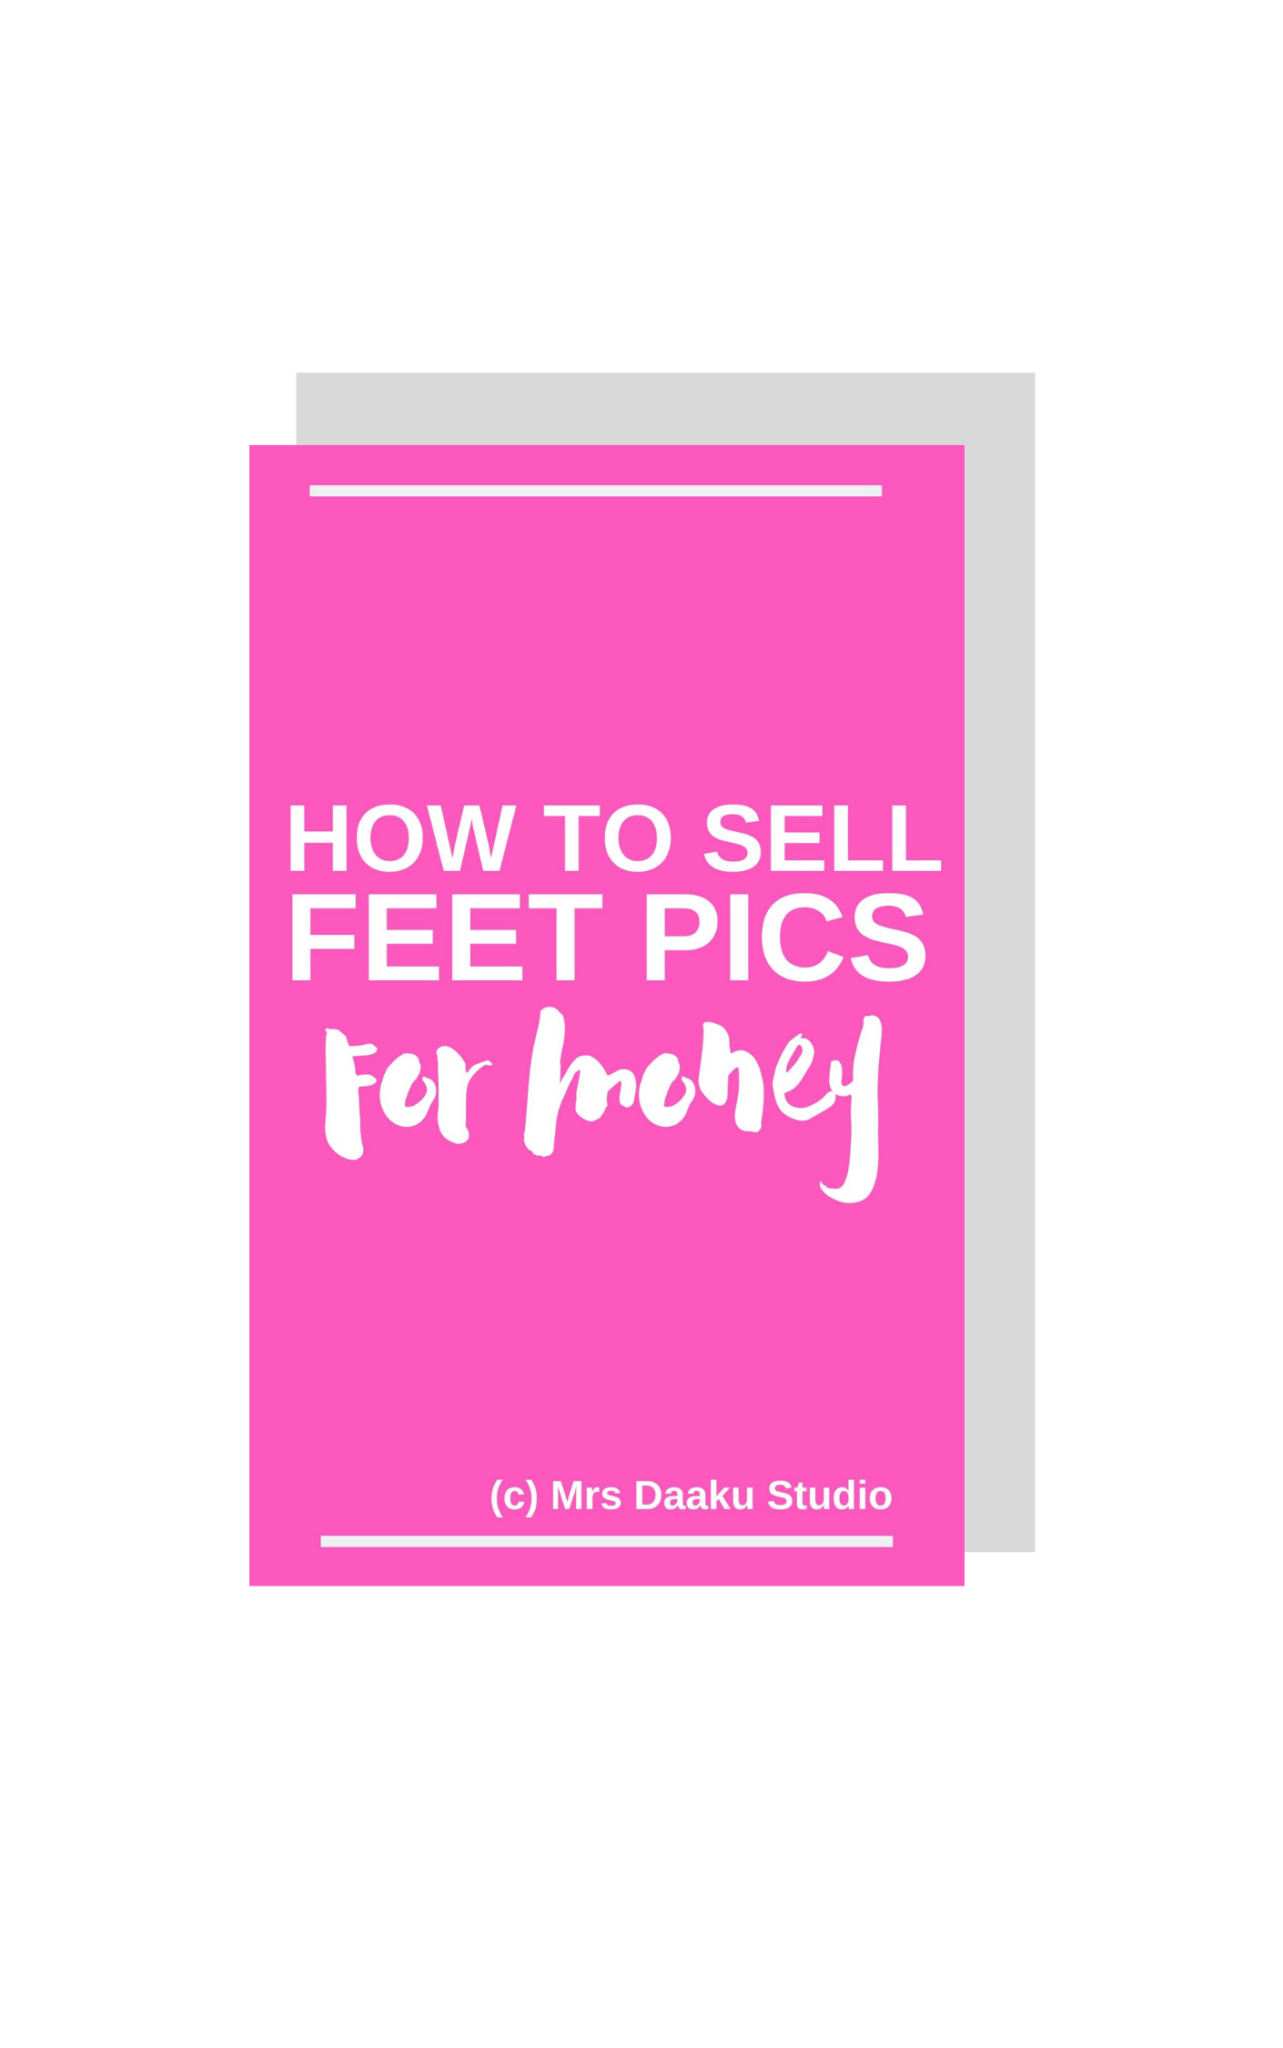 HOW TO SELL FEET PICS FOR MONEY (2)